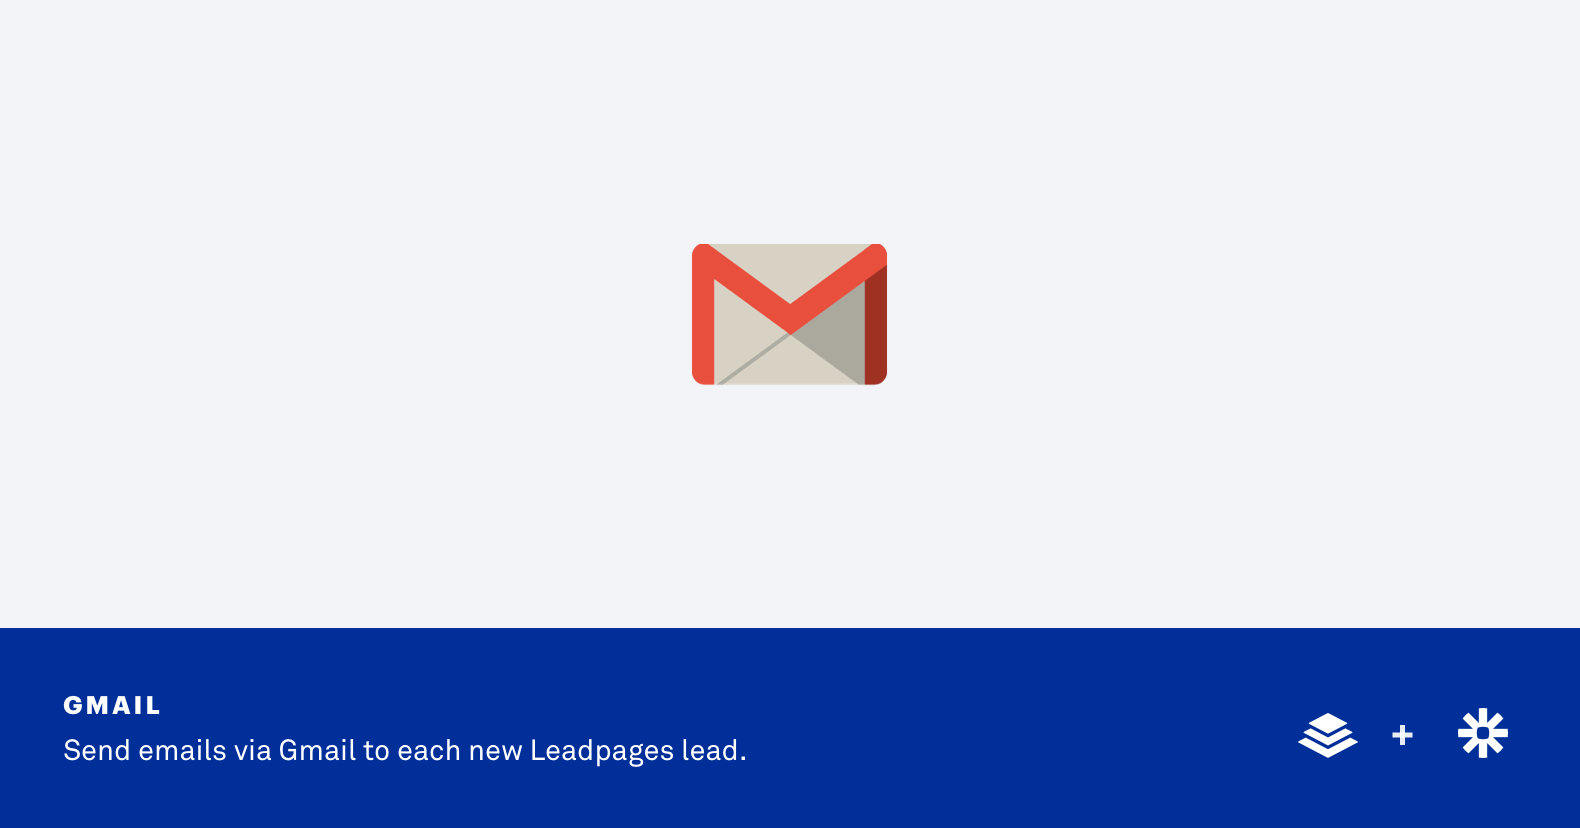 Integrate Gmail with Leadpages via Zapier Integration